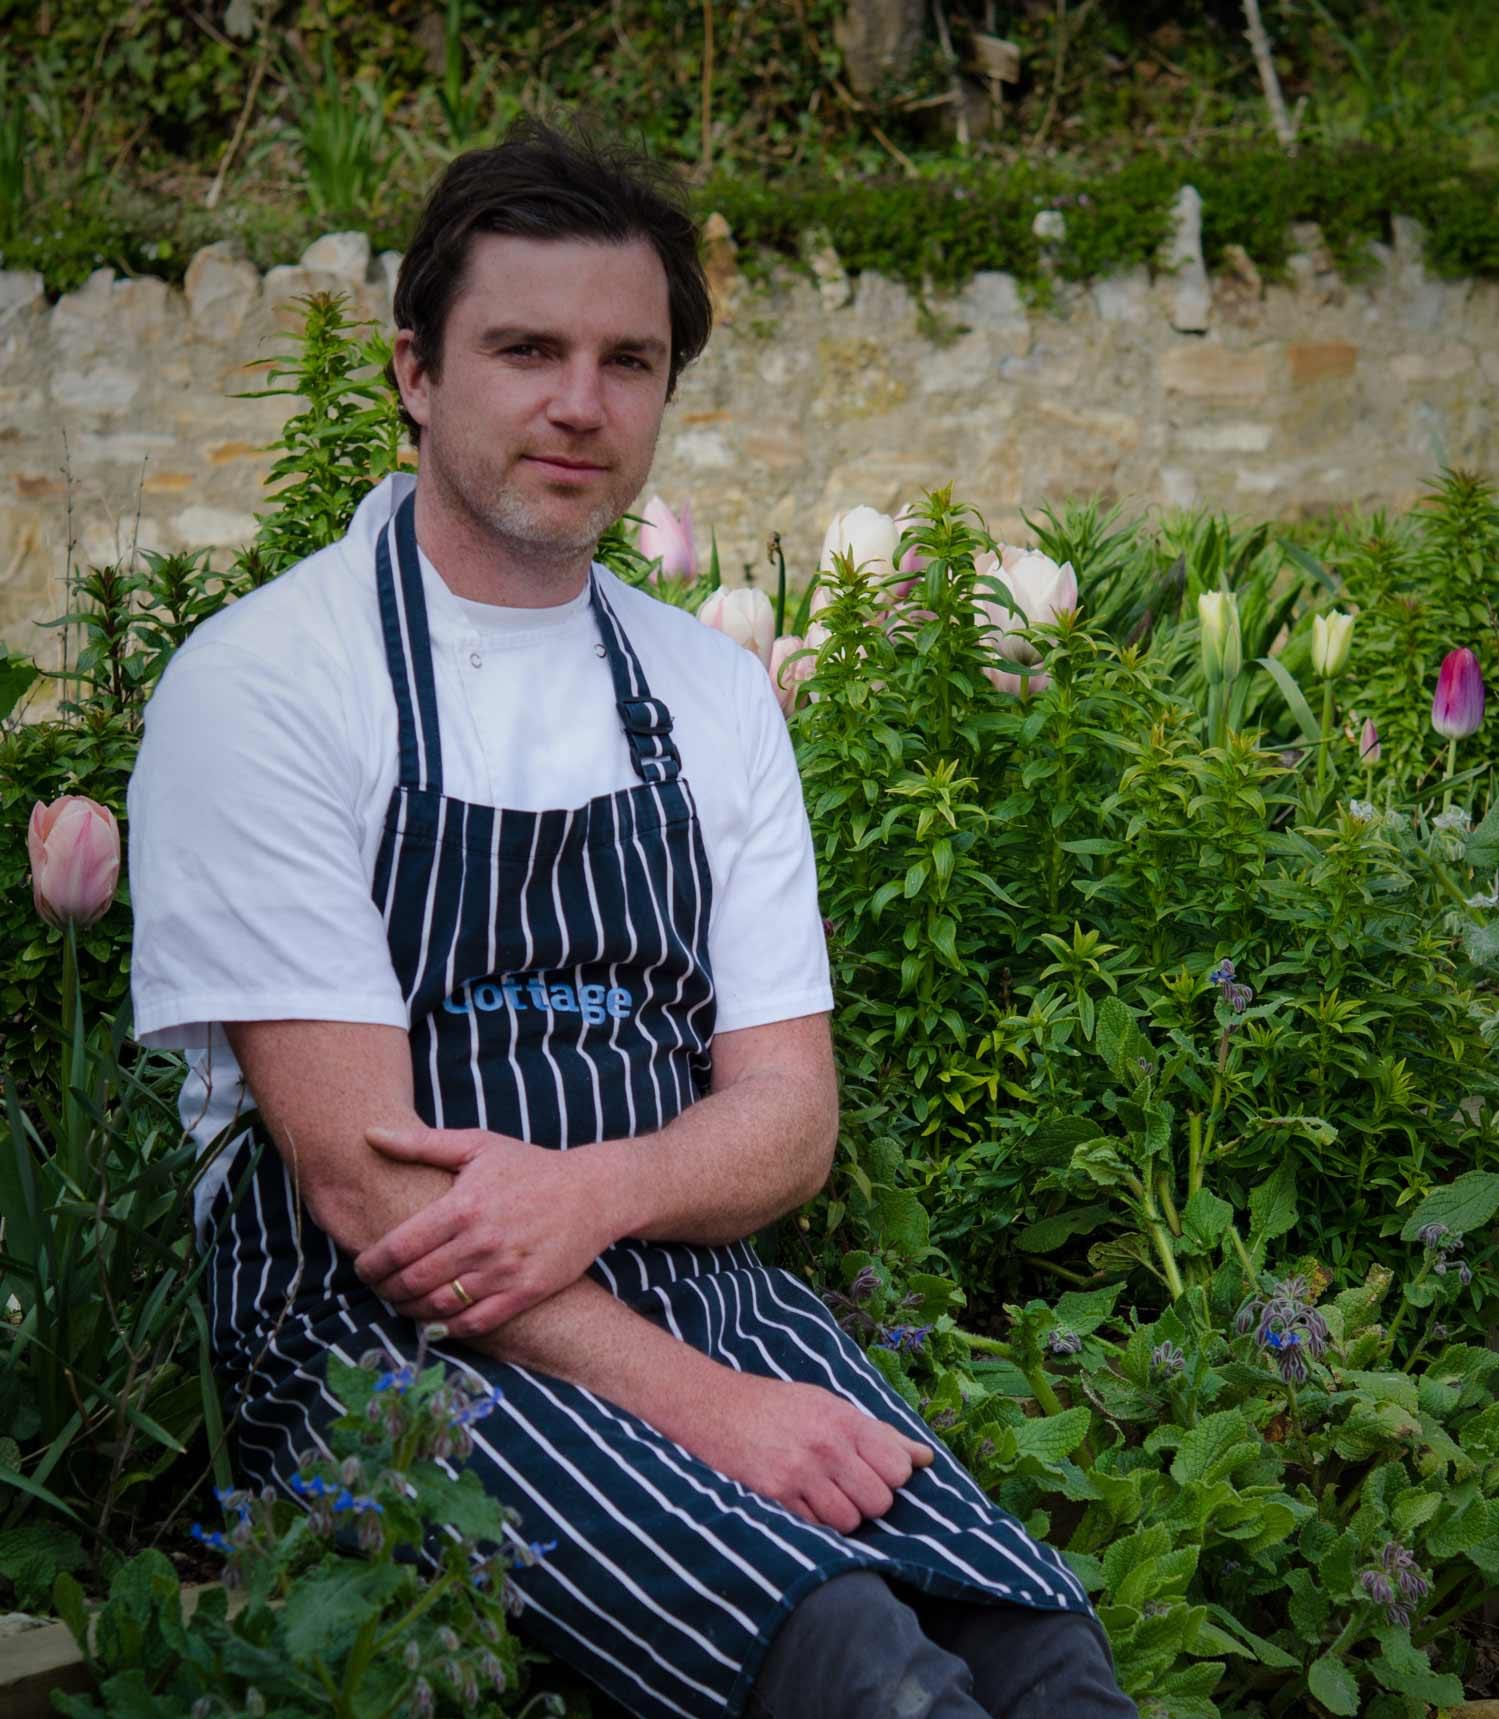 Gill Mellor, chef, food writer and author of Gather, Time and several River Cottage Handbooks